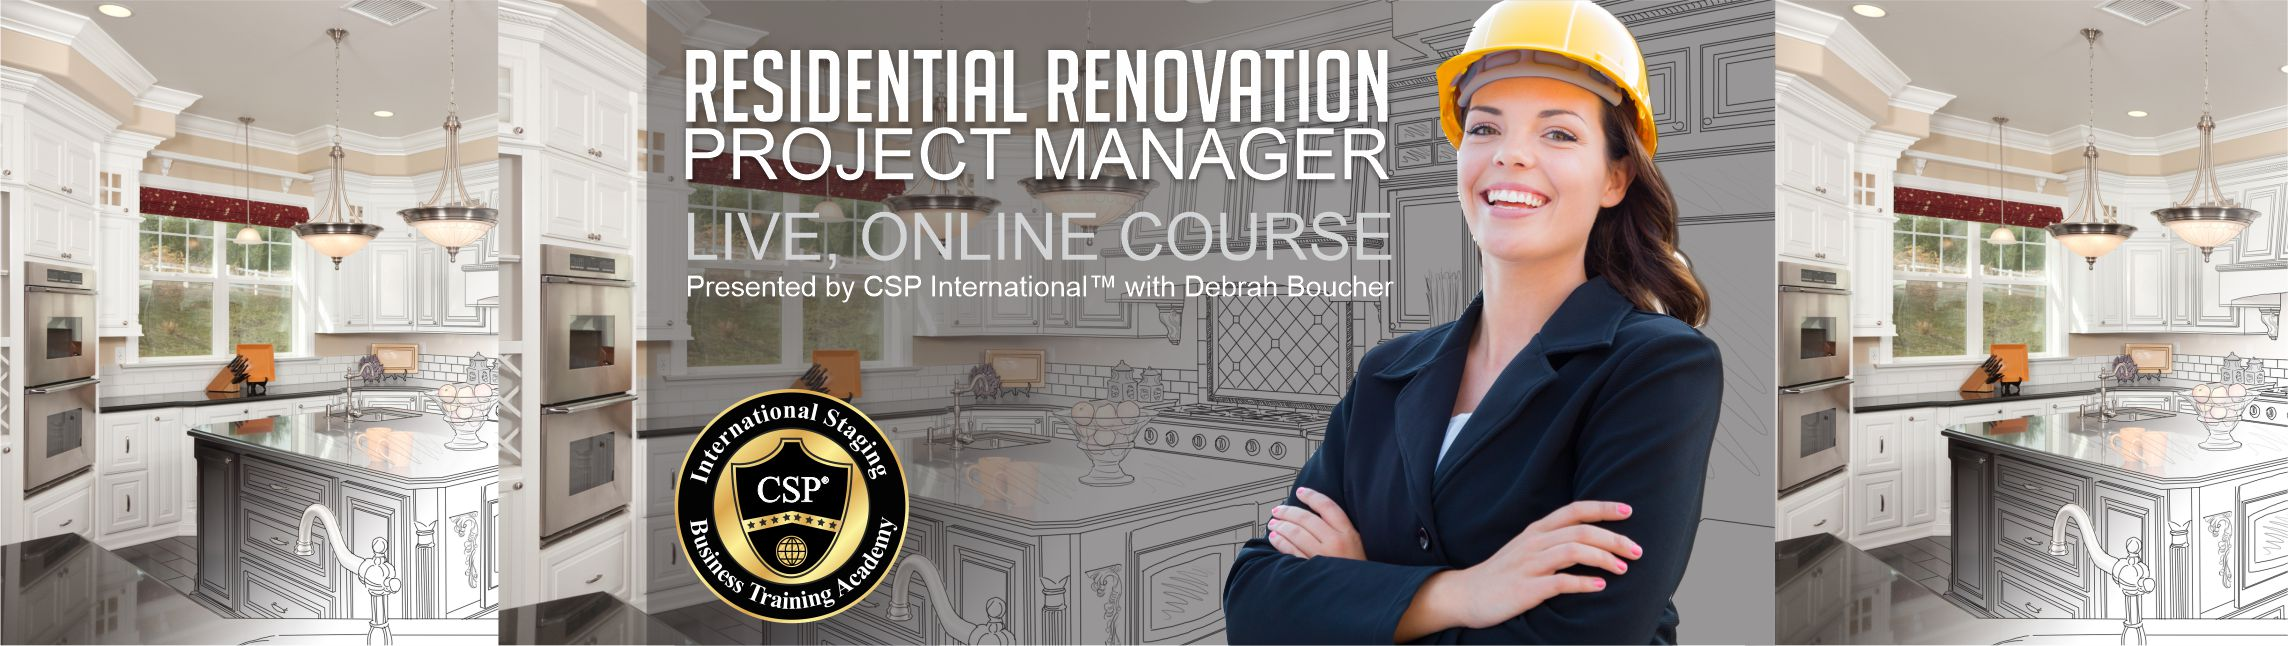 new residential renovation project manager course